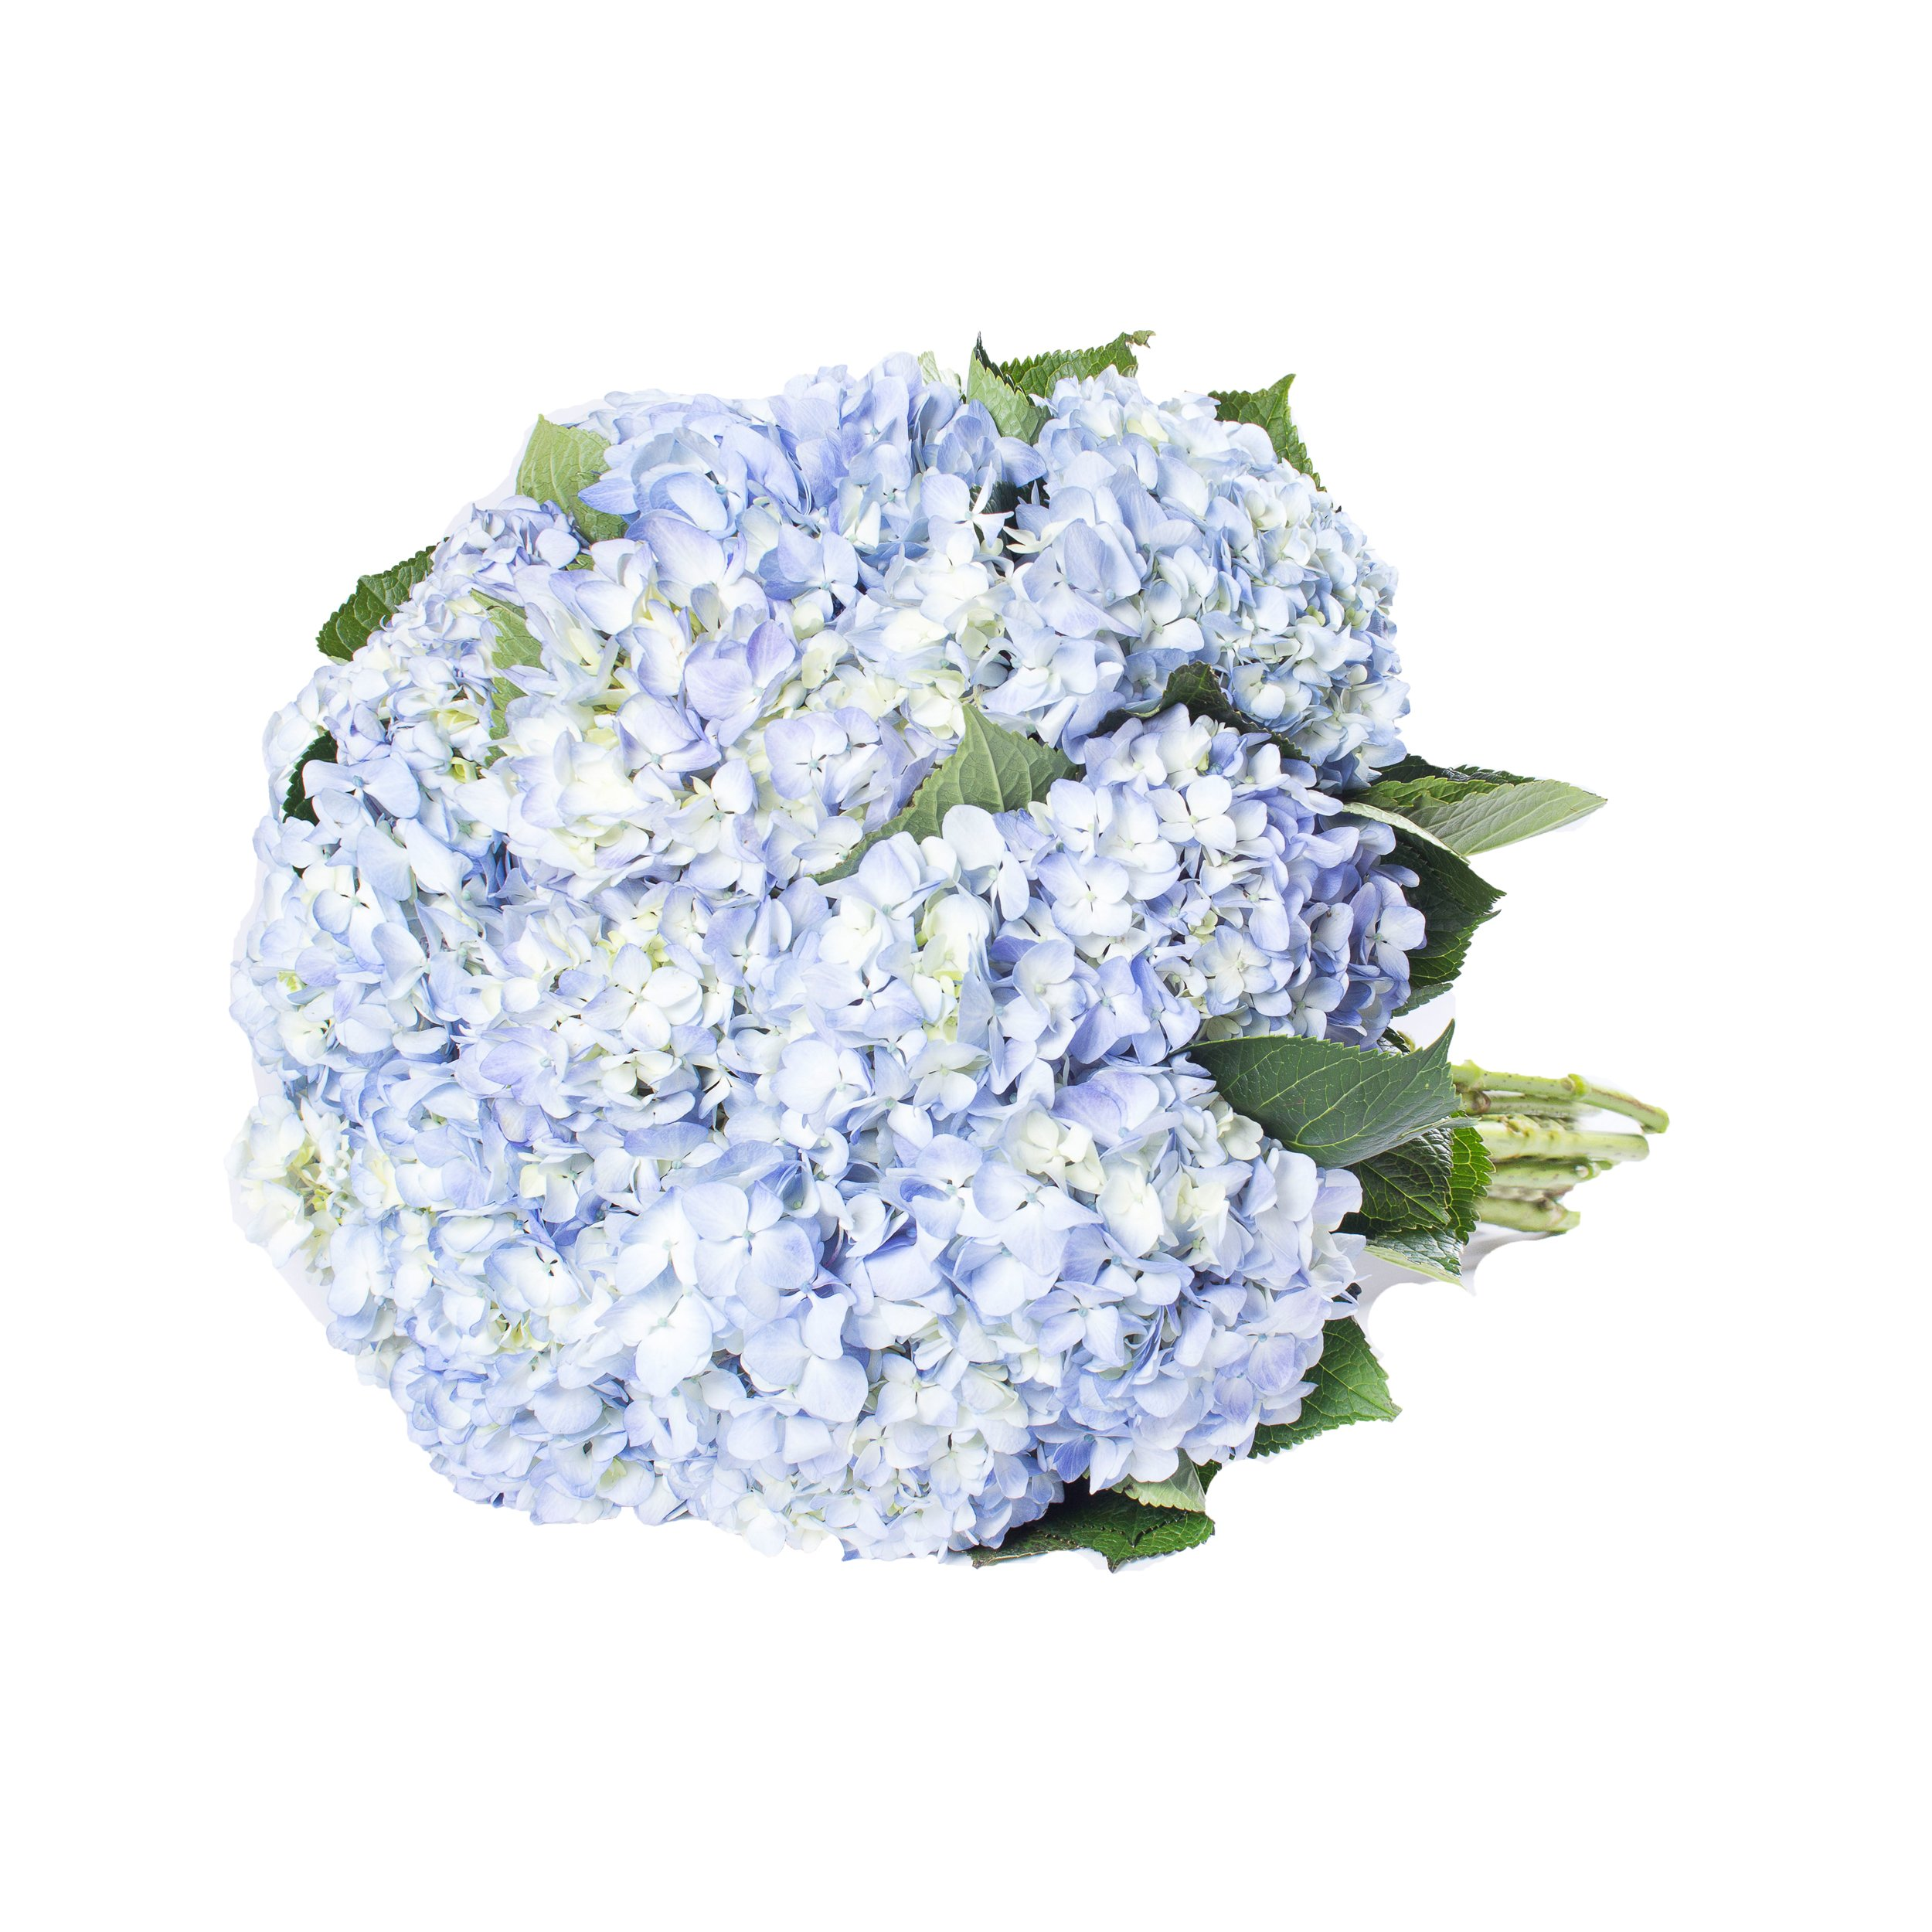 Farm Fresh Natural Blue Hydrangeas- Pack 30 by Bloomingmore (Image #1)